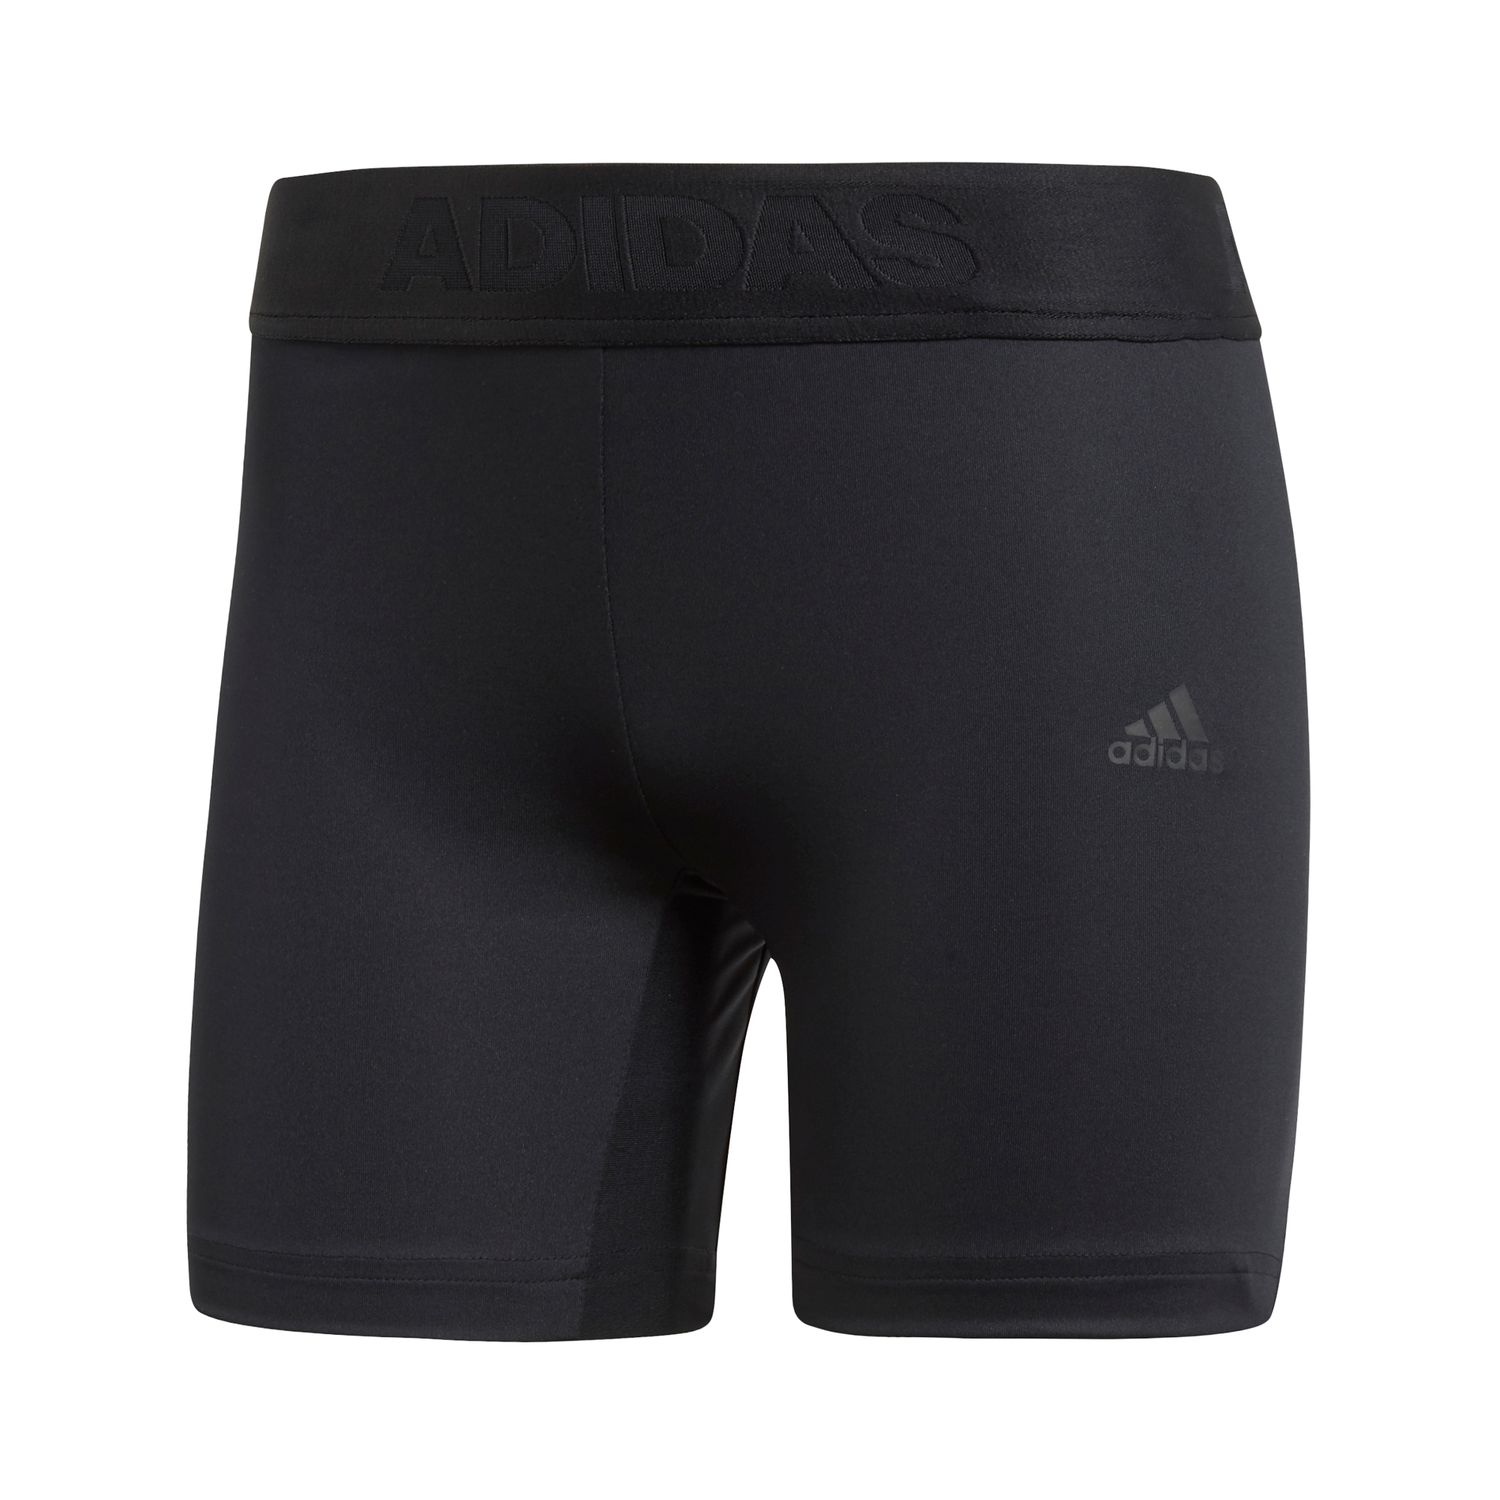 adidas Alphaskin Sport-Level Tight Damen Funktionsshort – Bild 1